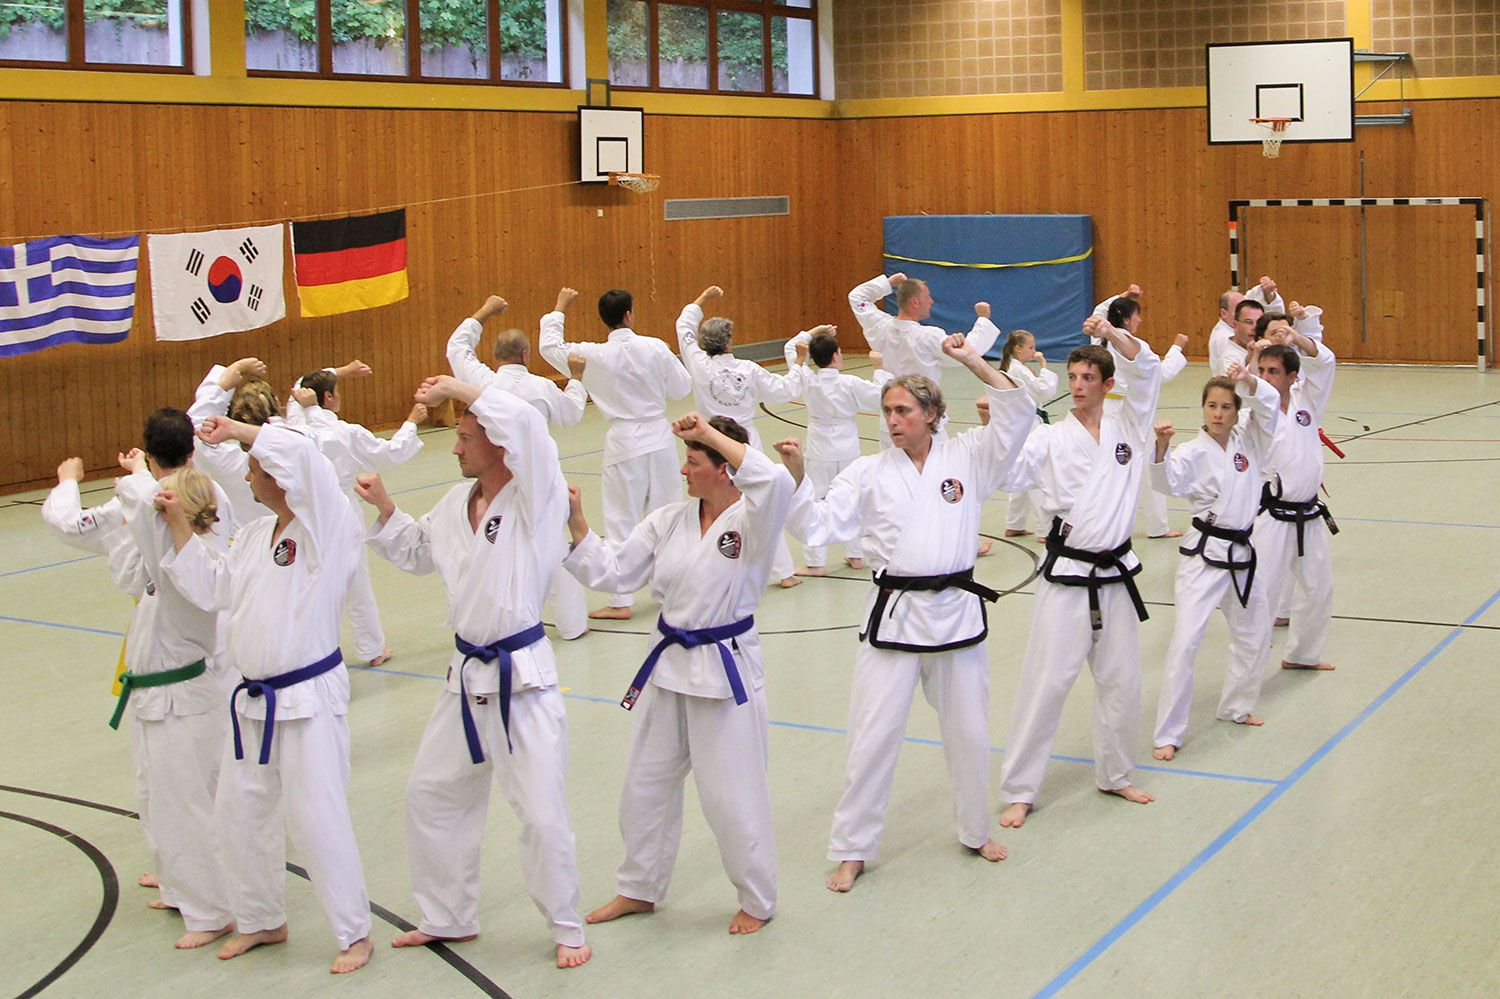 Taekwondo-Training im Sommertrainingscamp des International Taekwondo Black Belt Center e.V. - Erlangen, Nürnberg, Schwabach, Bamberg, Lichtenfels, Fürth/Vach